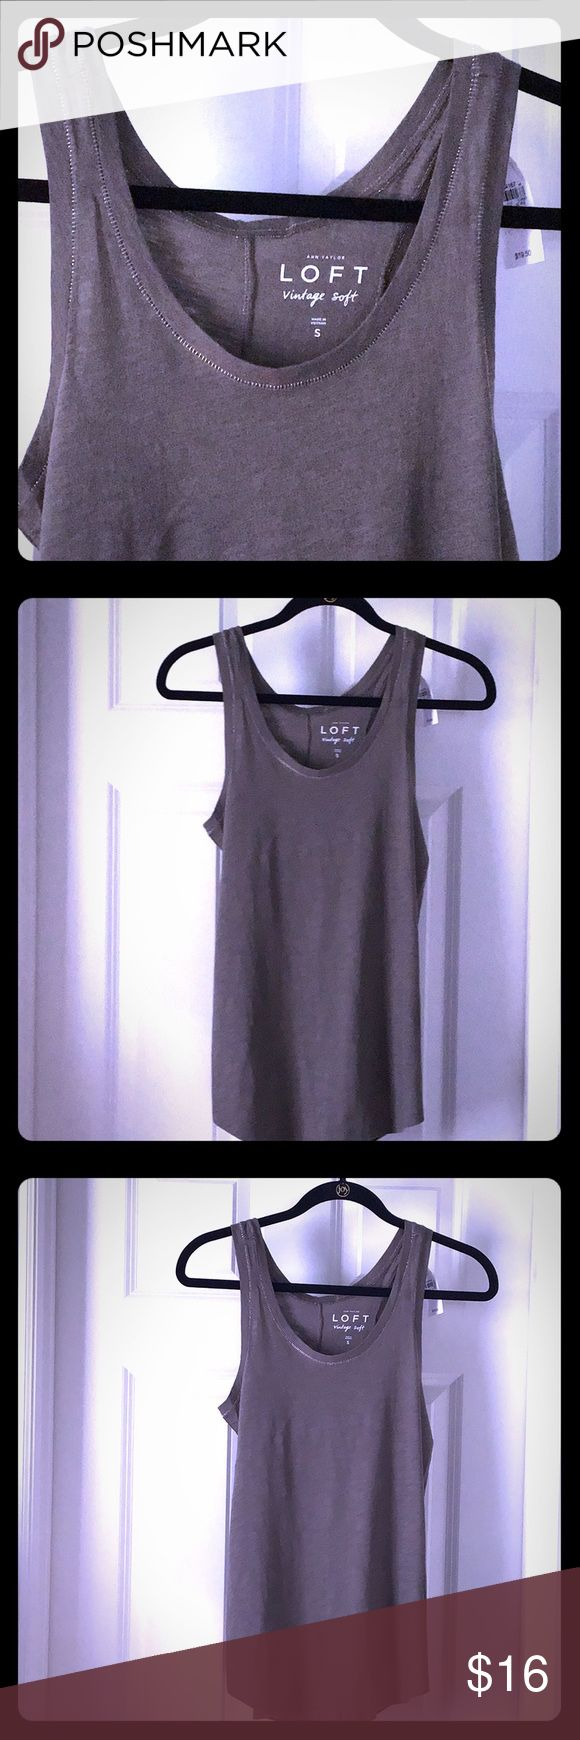 NEW Loft tank top Adorable greenish gray tank top, almost olive. Vintage soft wi... 1